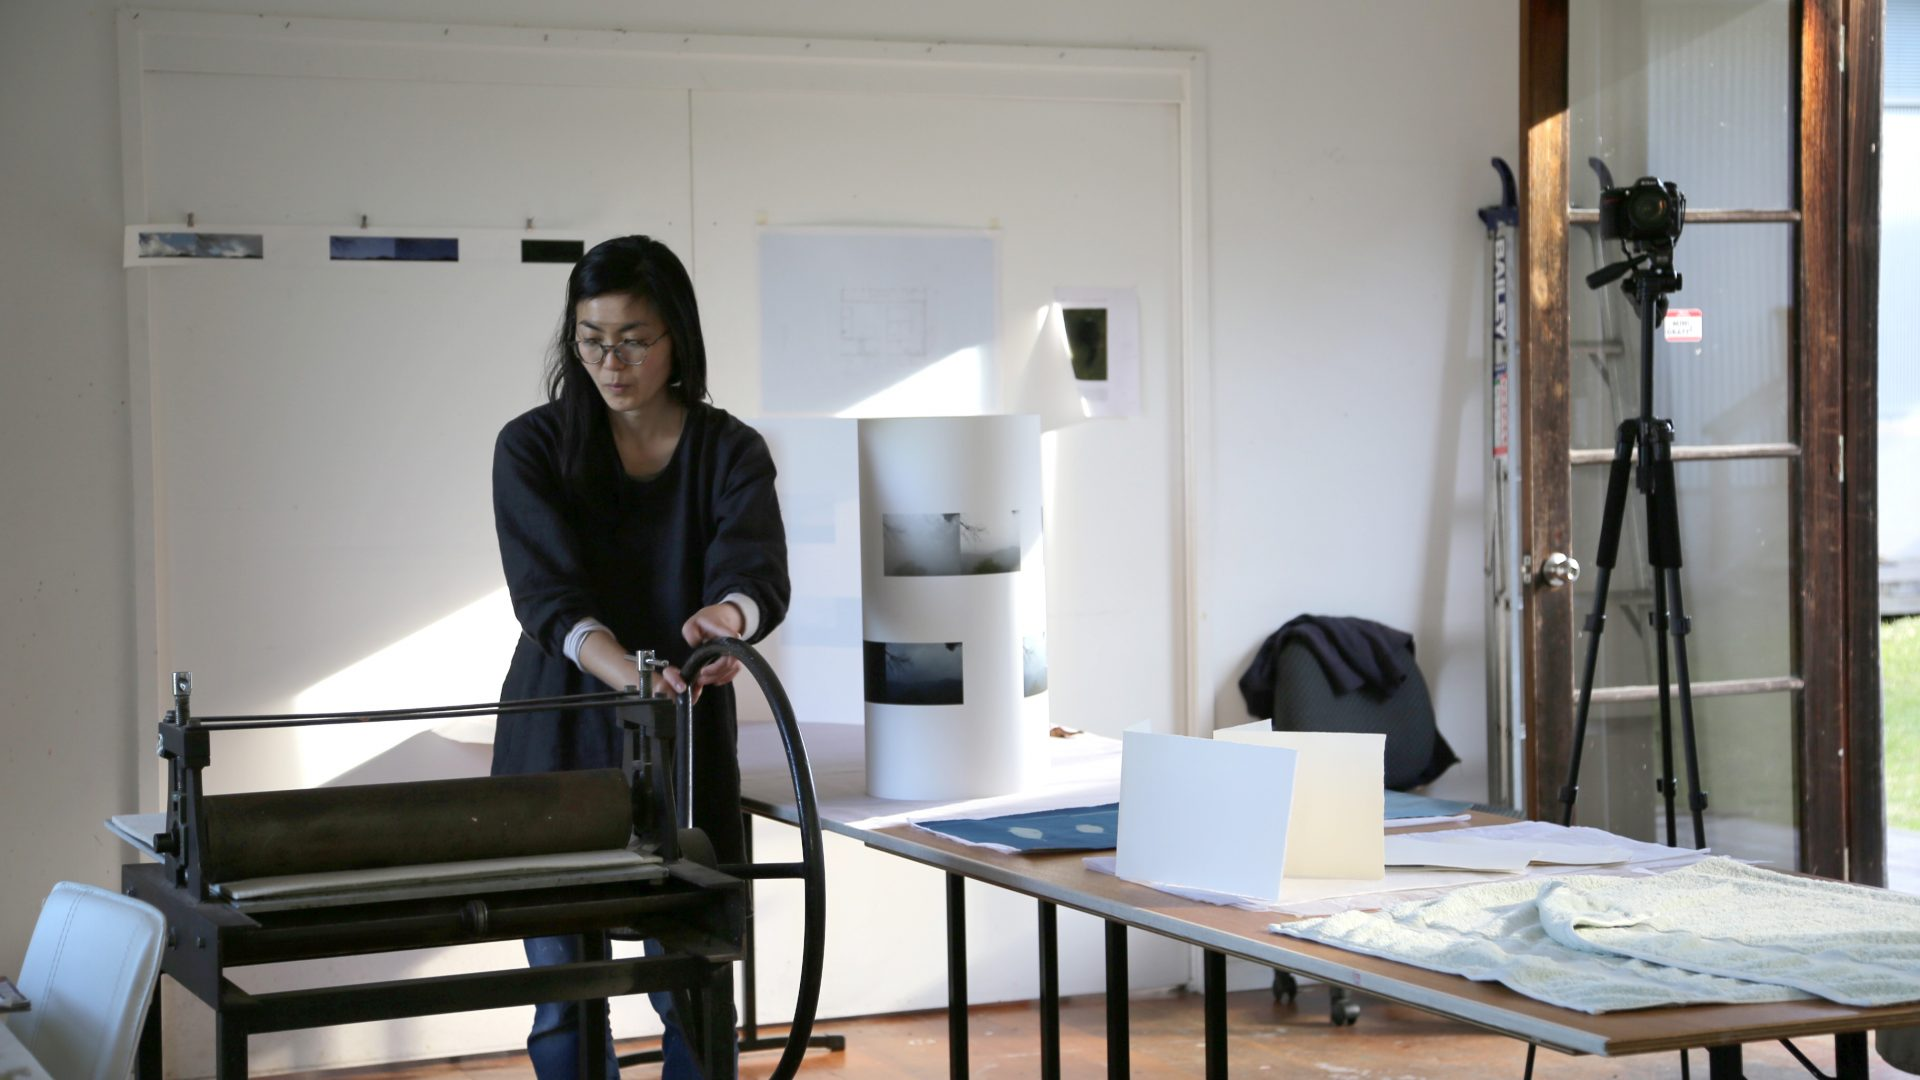 A person is standing in a studio working with a printing press